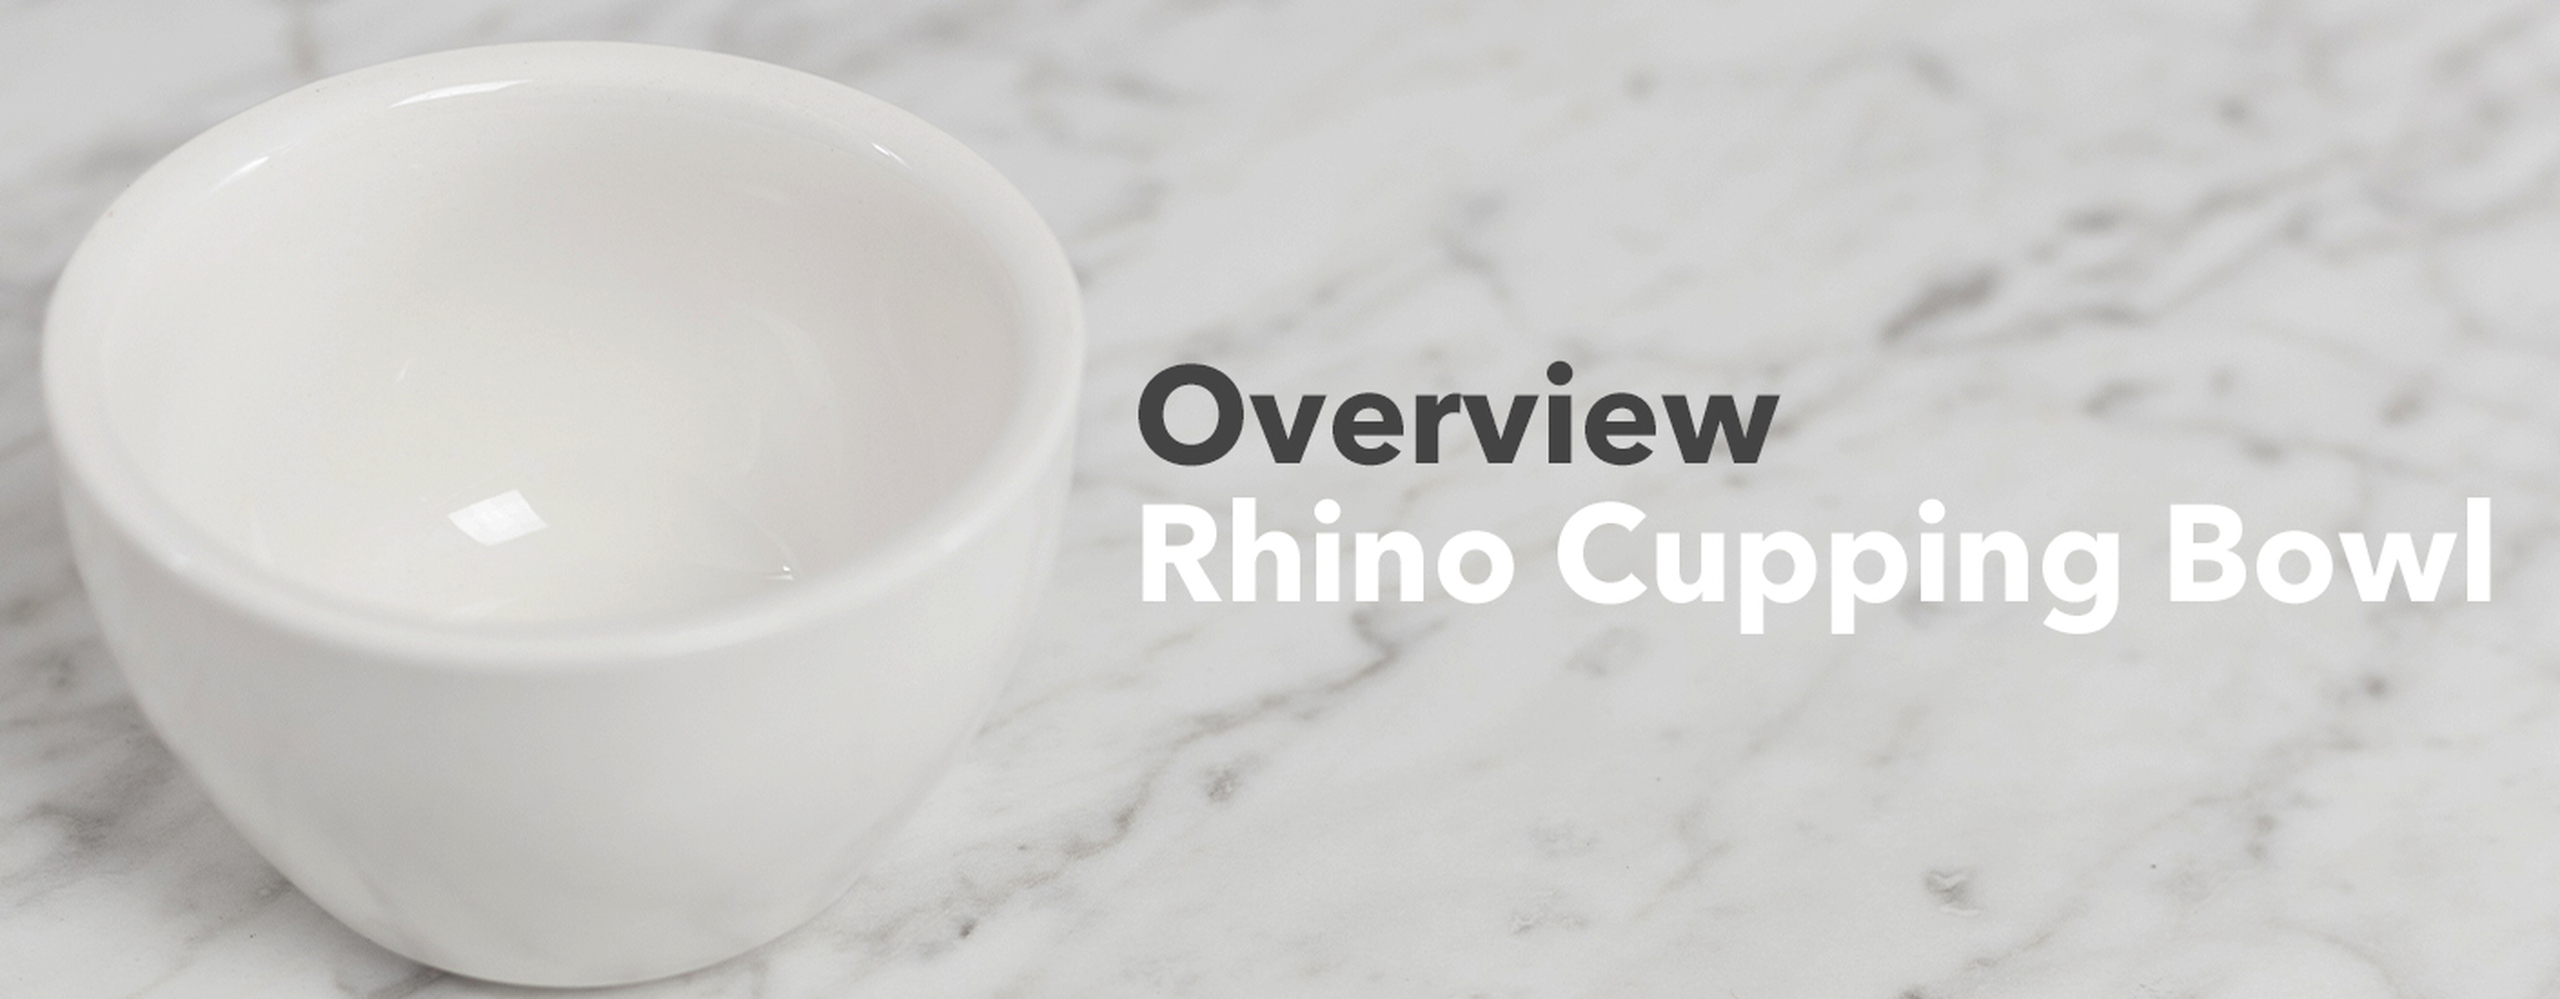 Overview Rhino Cupping Bowl